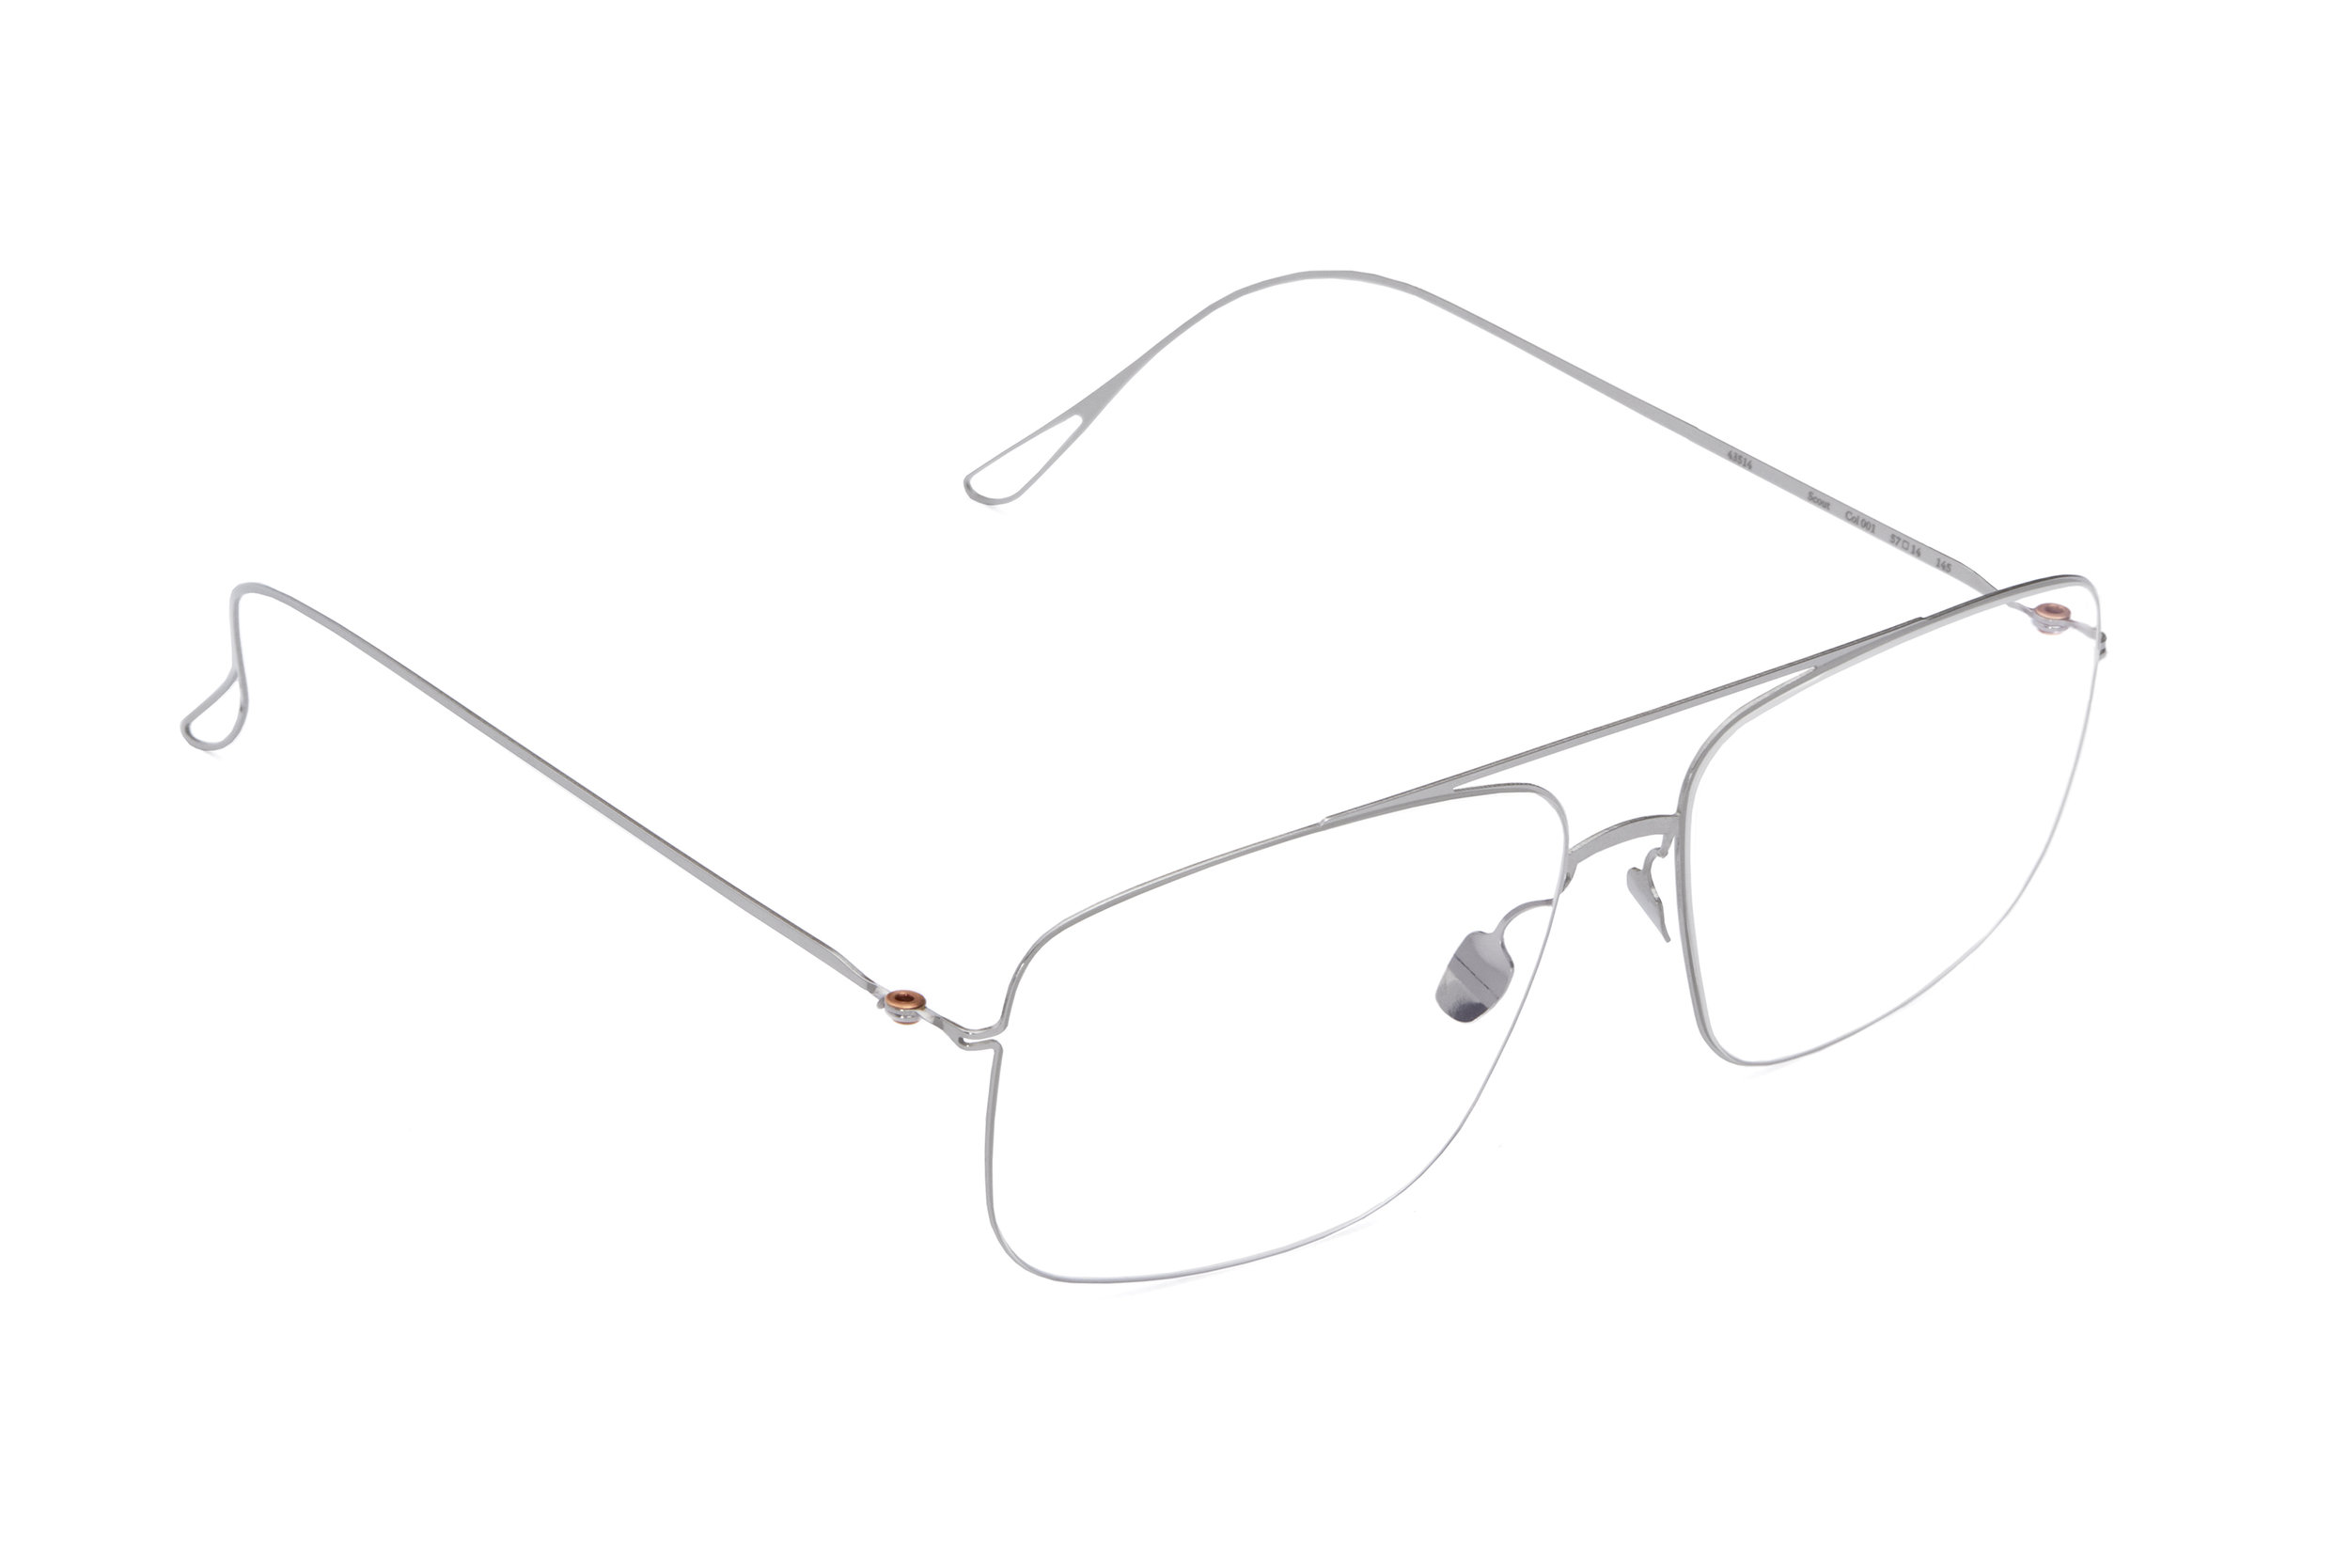 haffmans_neumeister_scout_airstream_clear_ultralight_eyeglasses_angle_102442.jpg